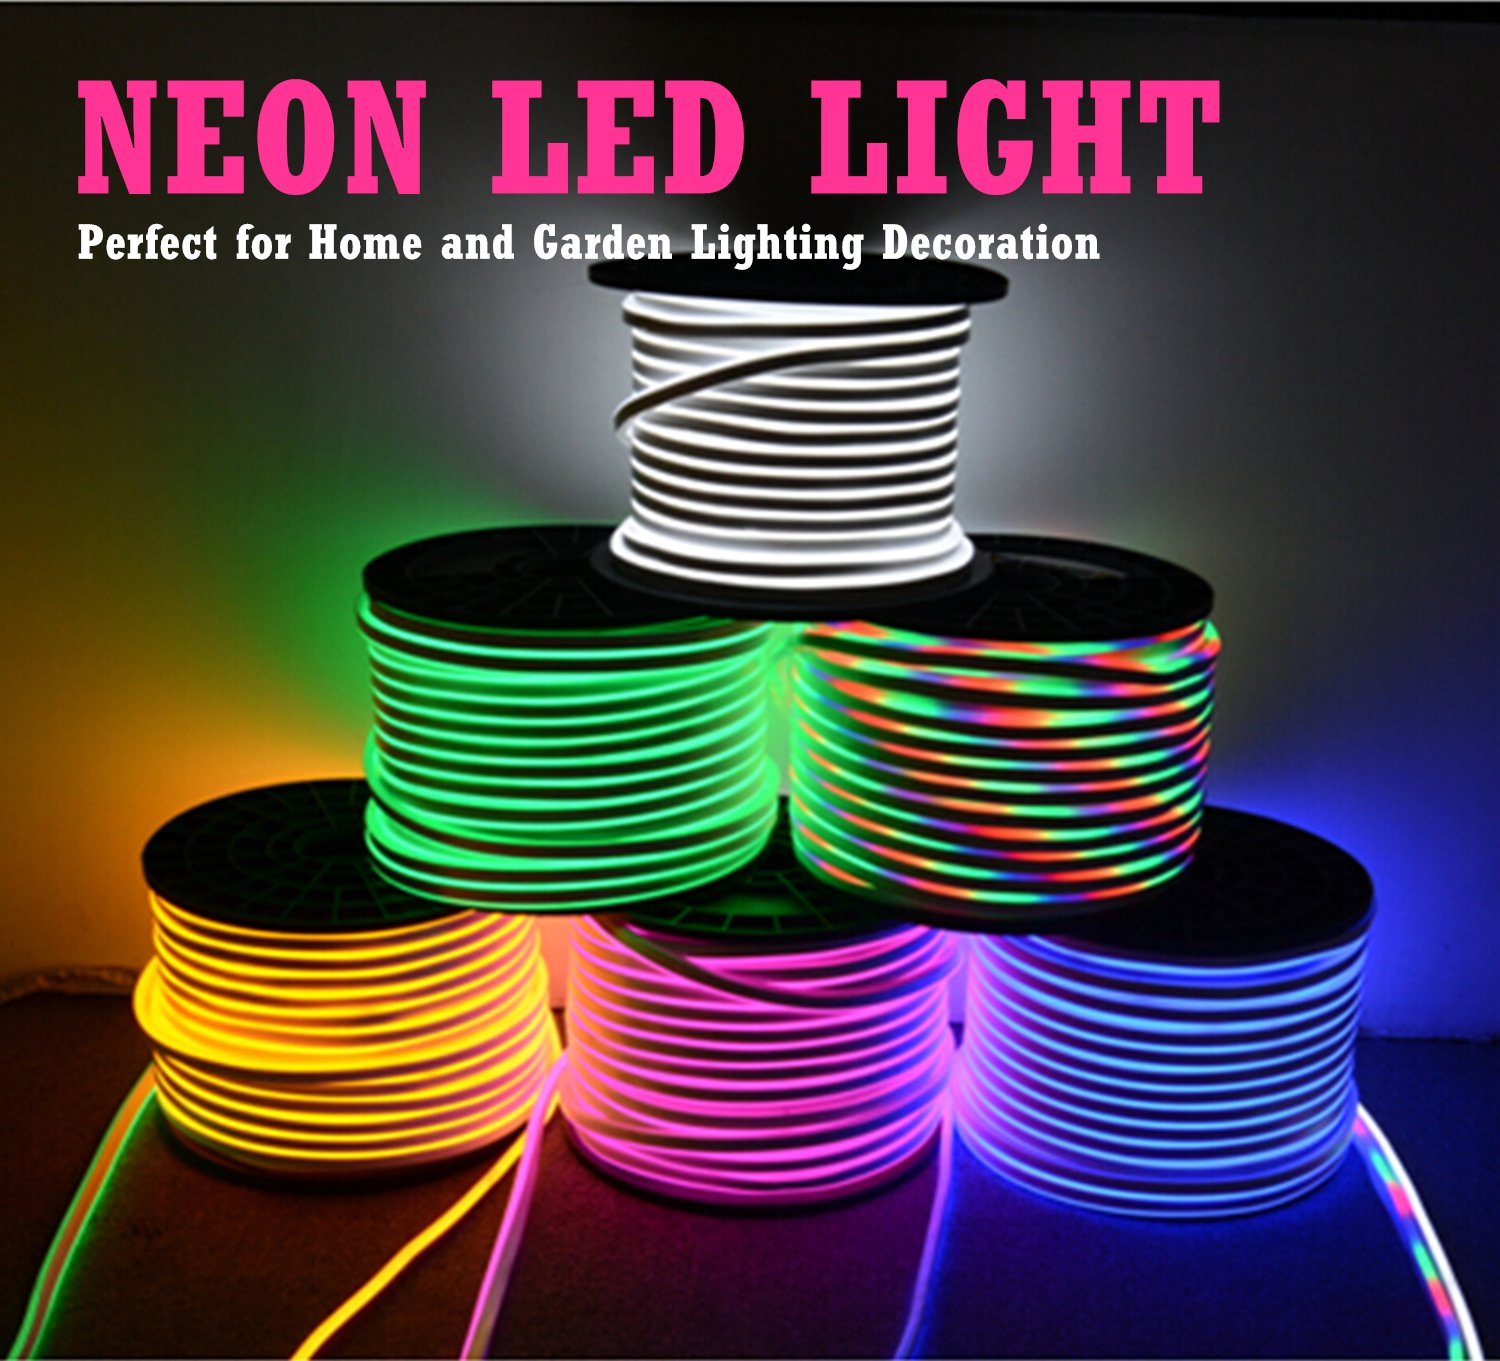 LED NEON LIGHT, IEKOV™ AC 110-120V Flexible LED Neon Strip Lights, 120 LEDs/M, Dimmable, Waterproof 2835 SMD LED Rope Light + Remote Controller for Home Decoration (131.2ft/40m, Red) by IEKOV (Image #3)